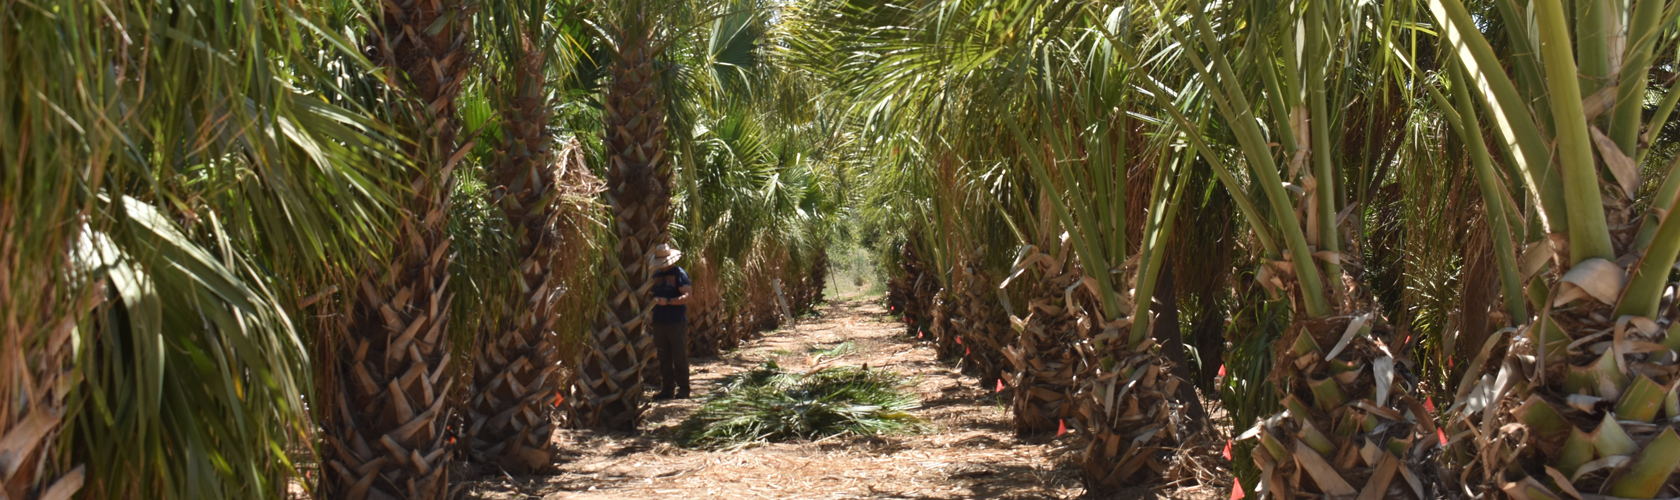 Row of Sabal palm trees at Madera grove